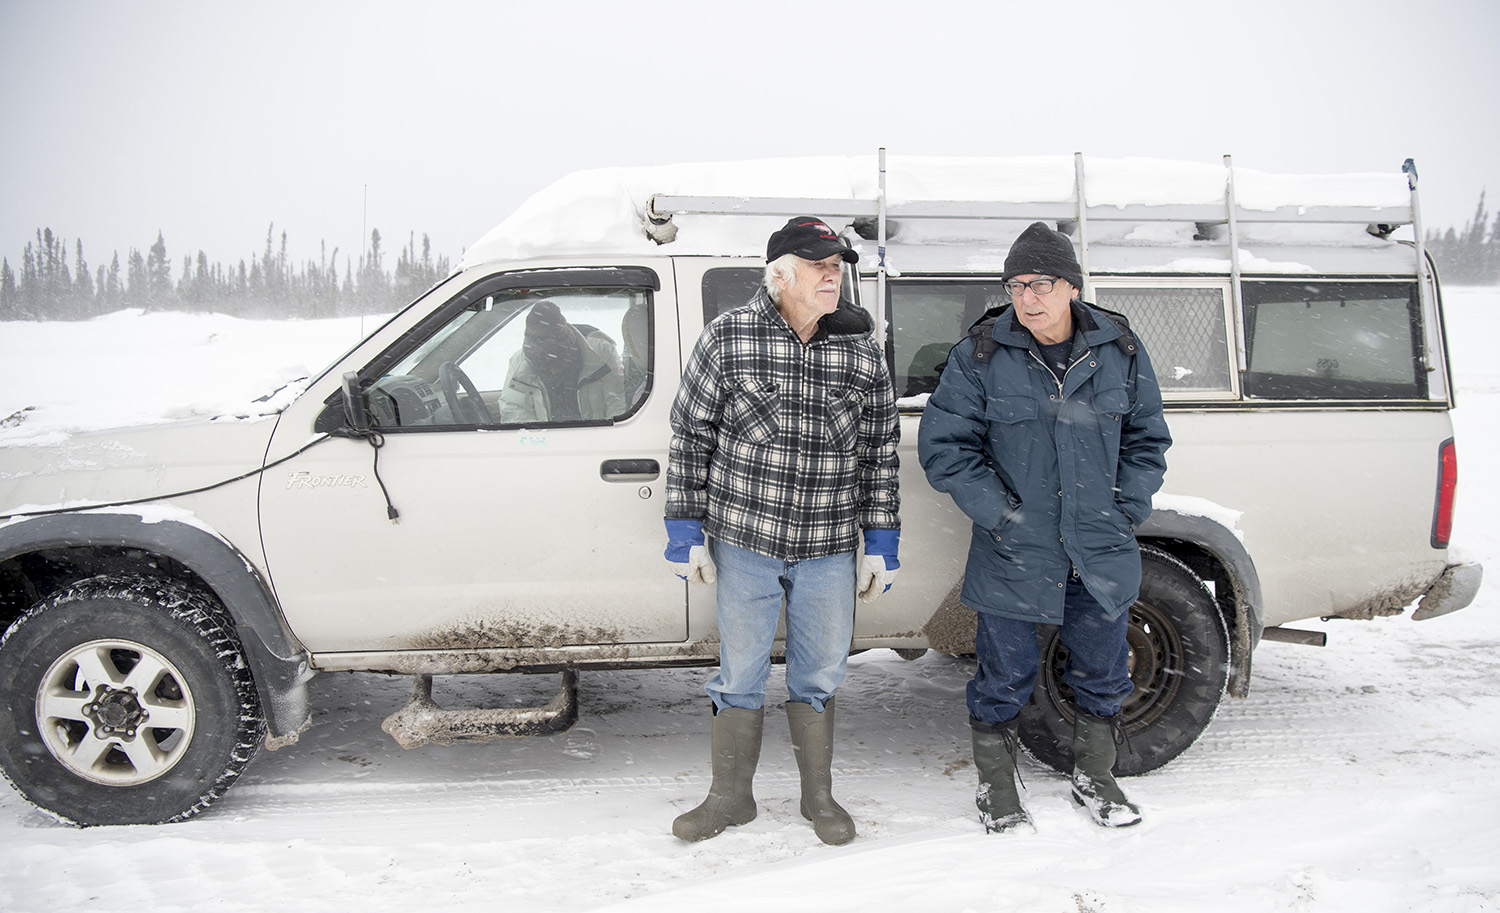 Jim Learning, left, and Davis stand by Learning's truck at the gate to Muskrat Falls Generating Facility on the North Spur near Happy Valley-Goose Bay, Newfoundland and Labrador, on Nov. 16, 2019.